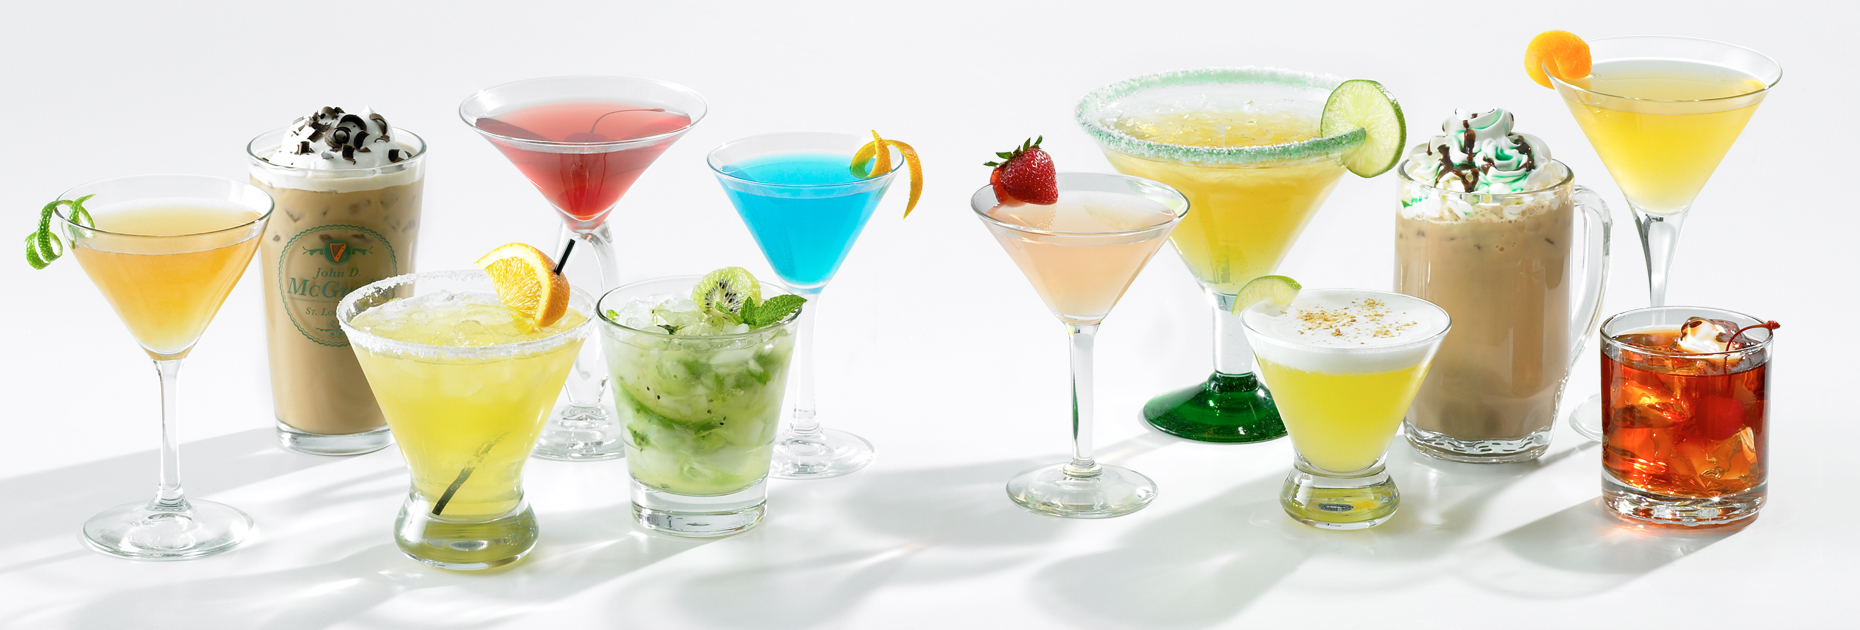 Group of cocktails with garnishes